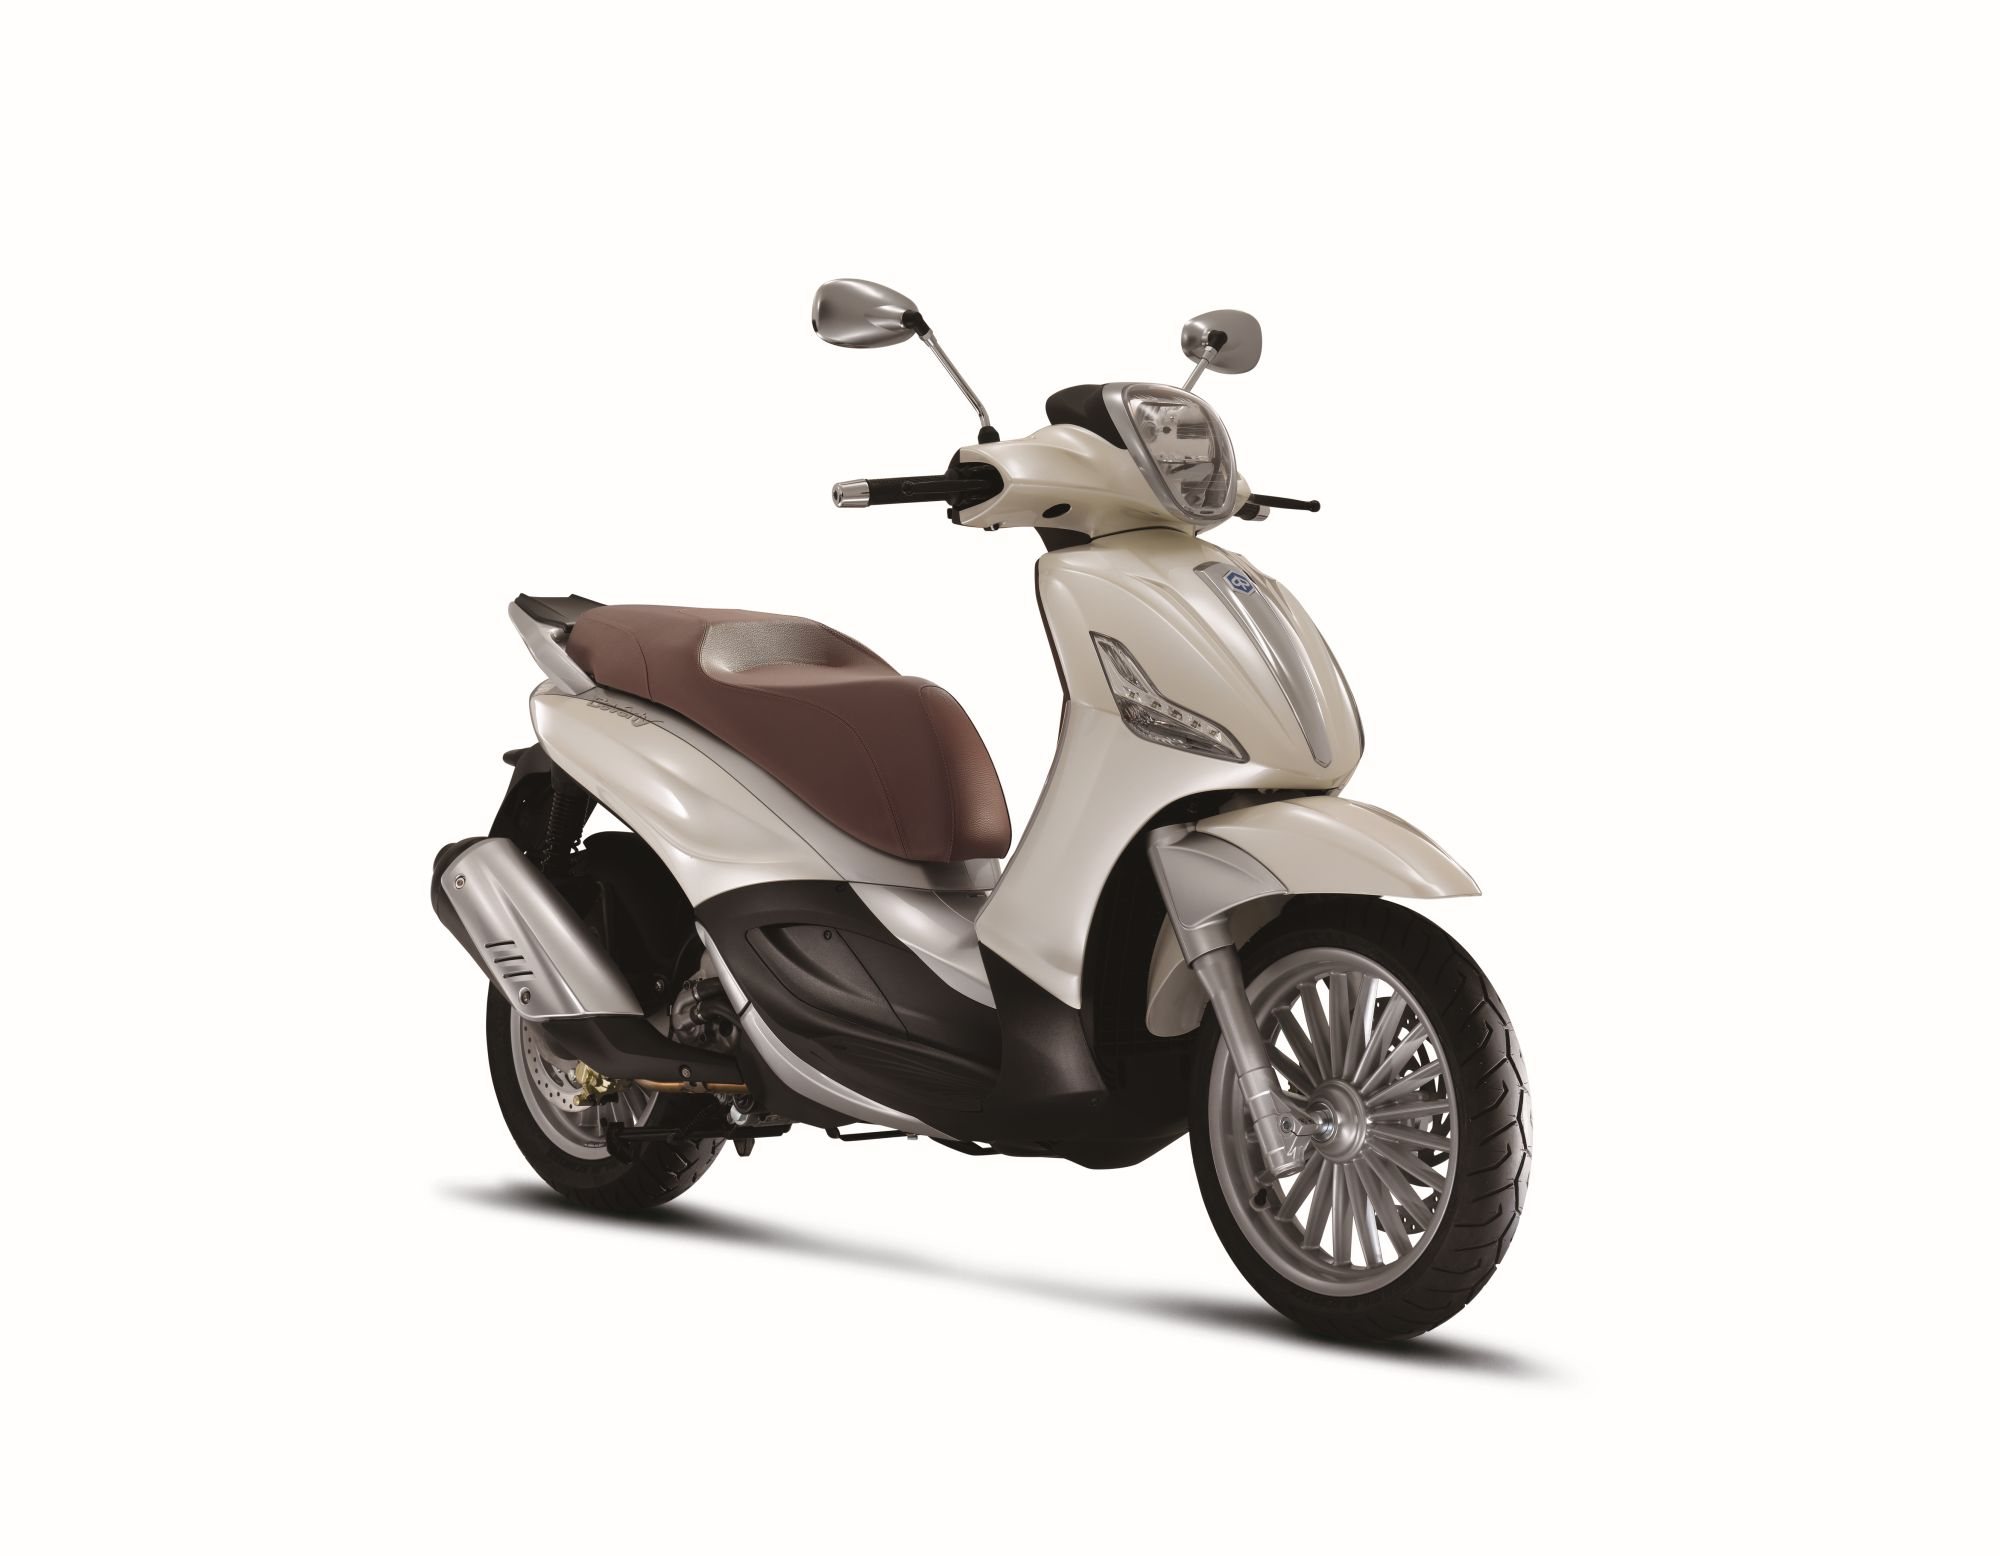 piaggio beverly 300 i e all technical data of the model beverly 300 i e from piaggio. Black Bedroom Furniture Sets. Home Design Ideas